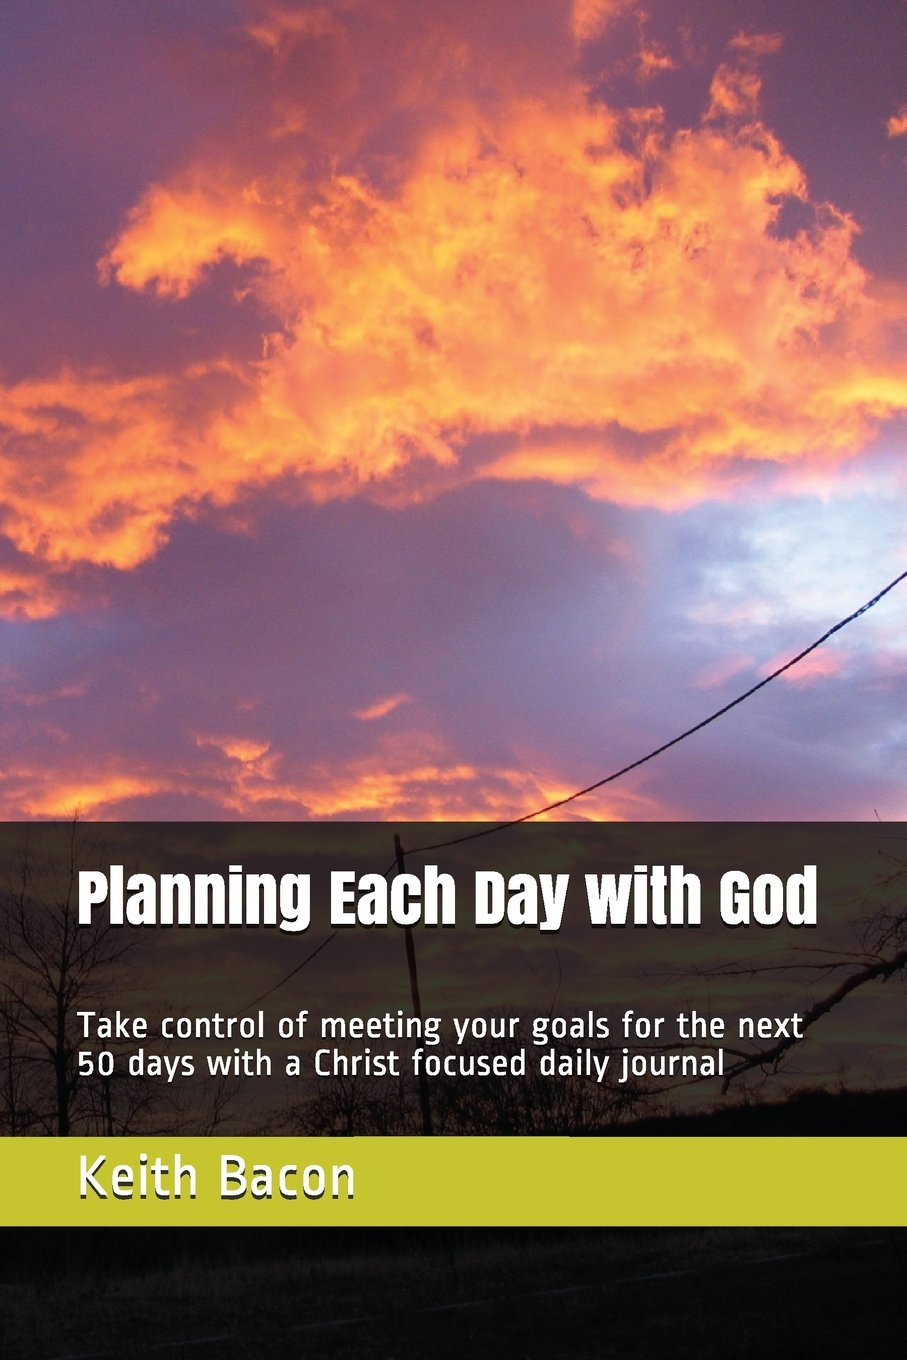 Planning Each Day with God: Take control of meeting your goals for the next 50 days with a Christ focused daily journal (Meeting Your Goals With God) PDF